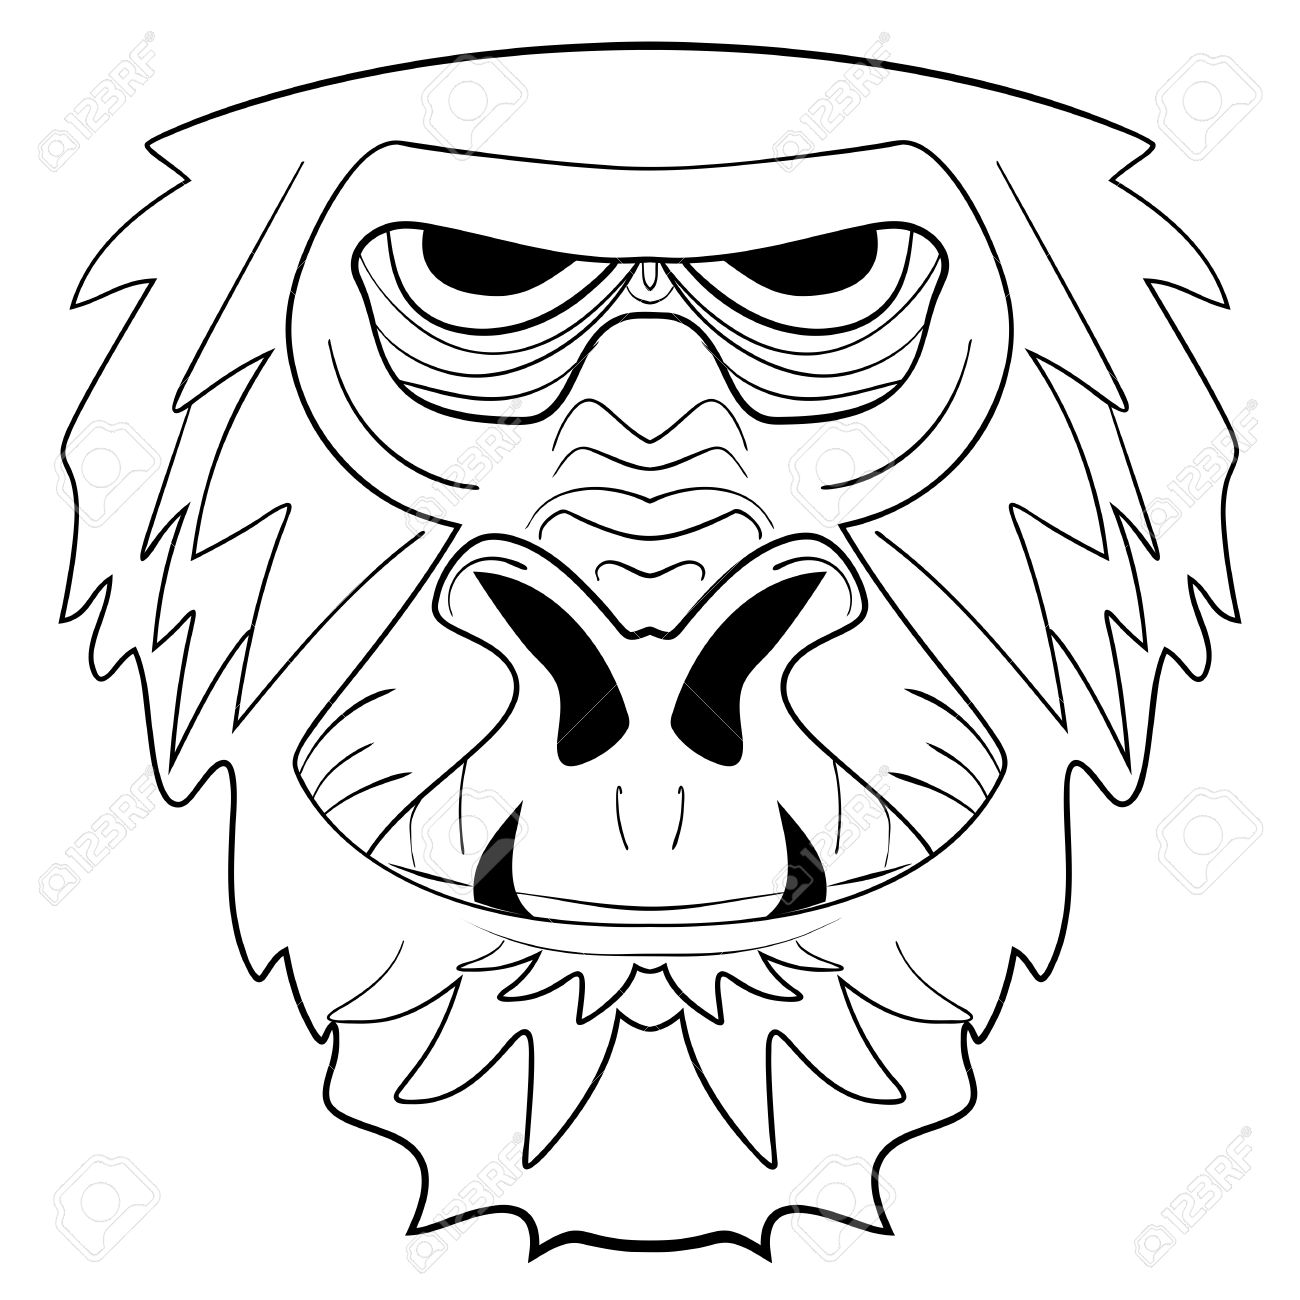 1300x1300 The Graphic Image Of The Monkey, Monkey Head, The Face. Drawing